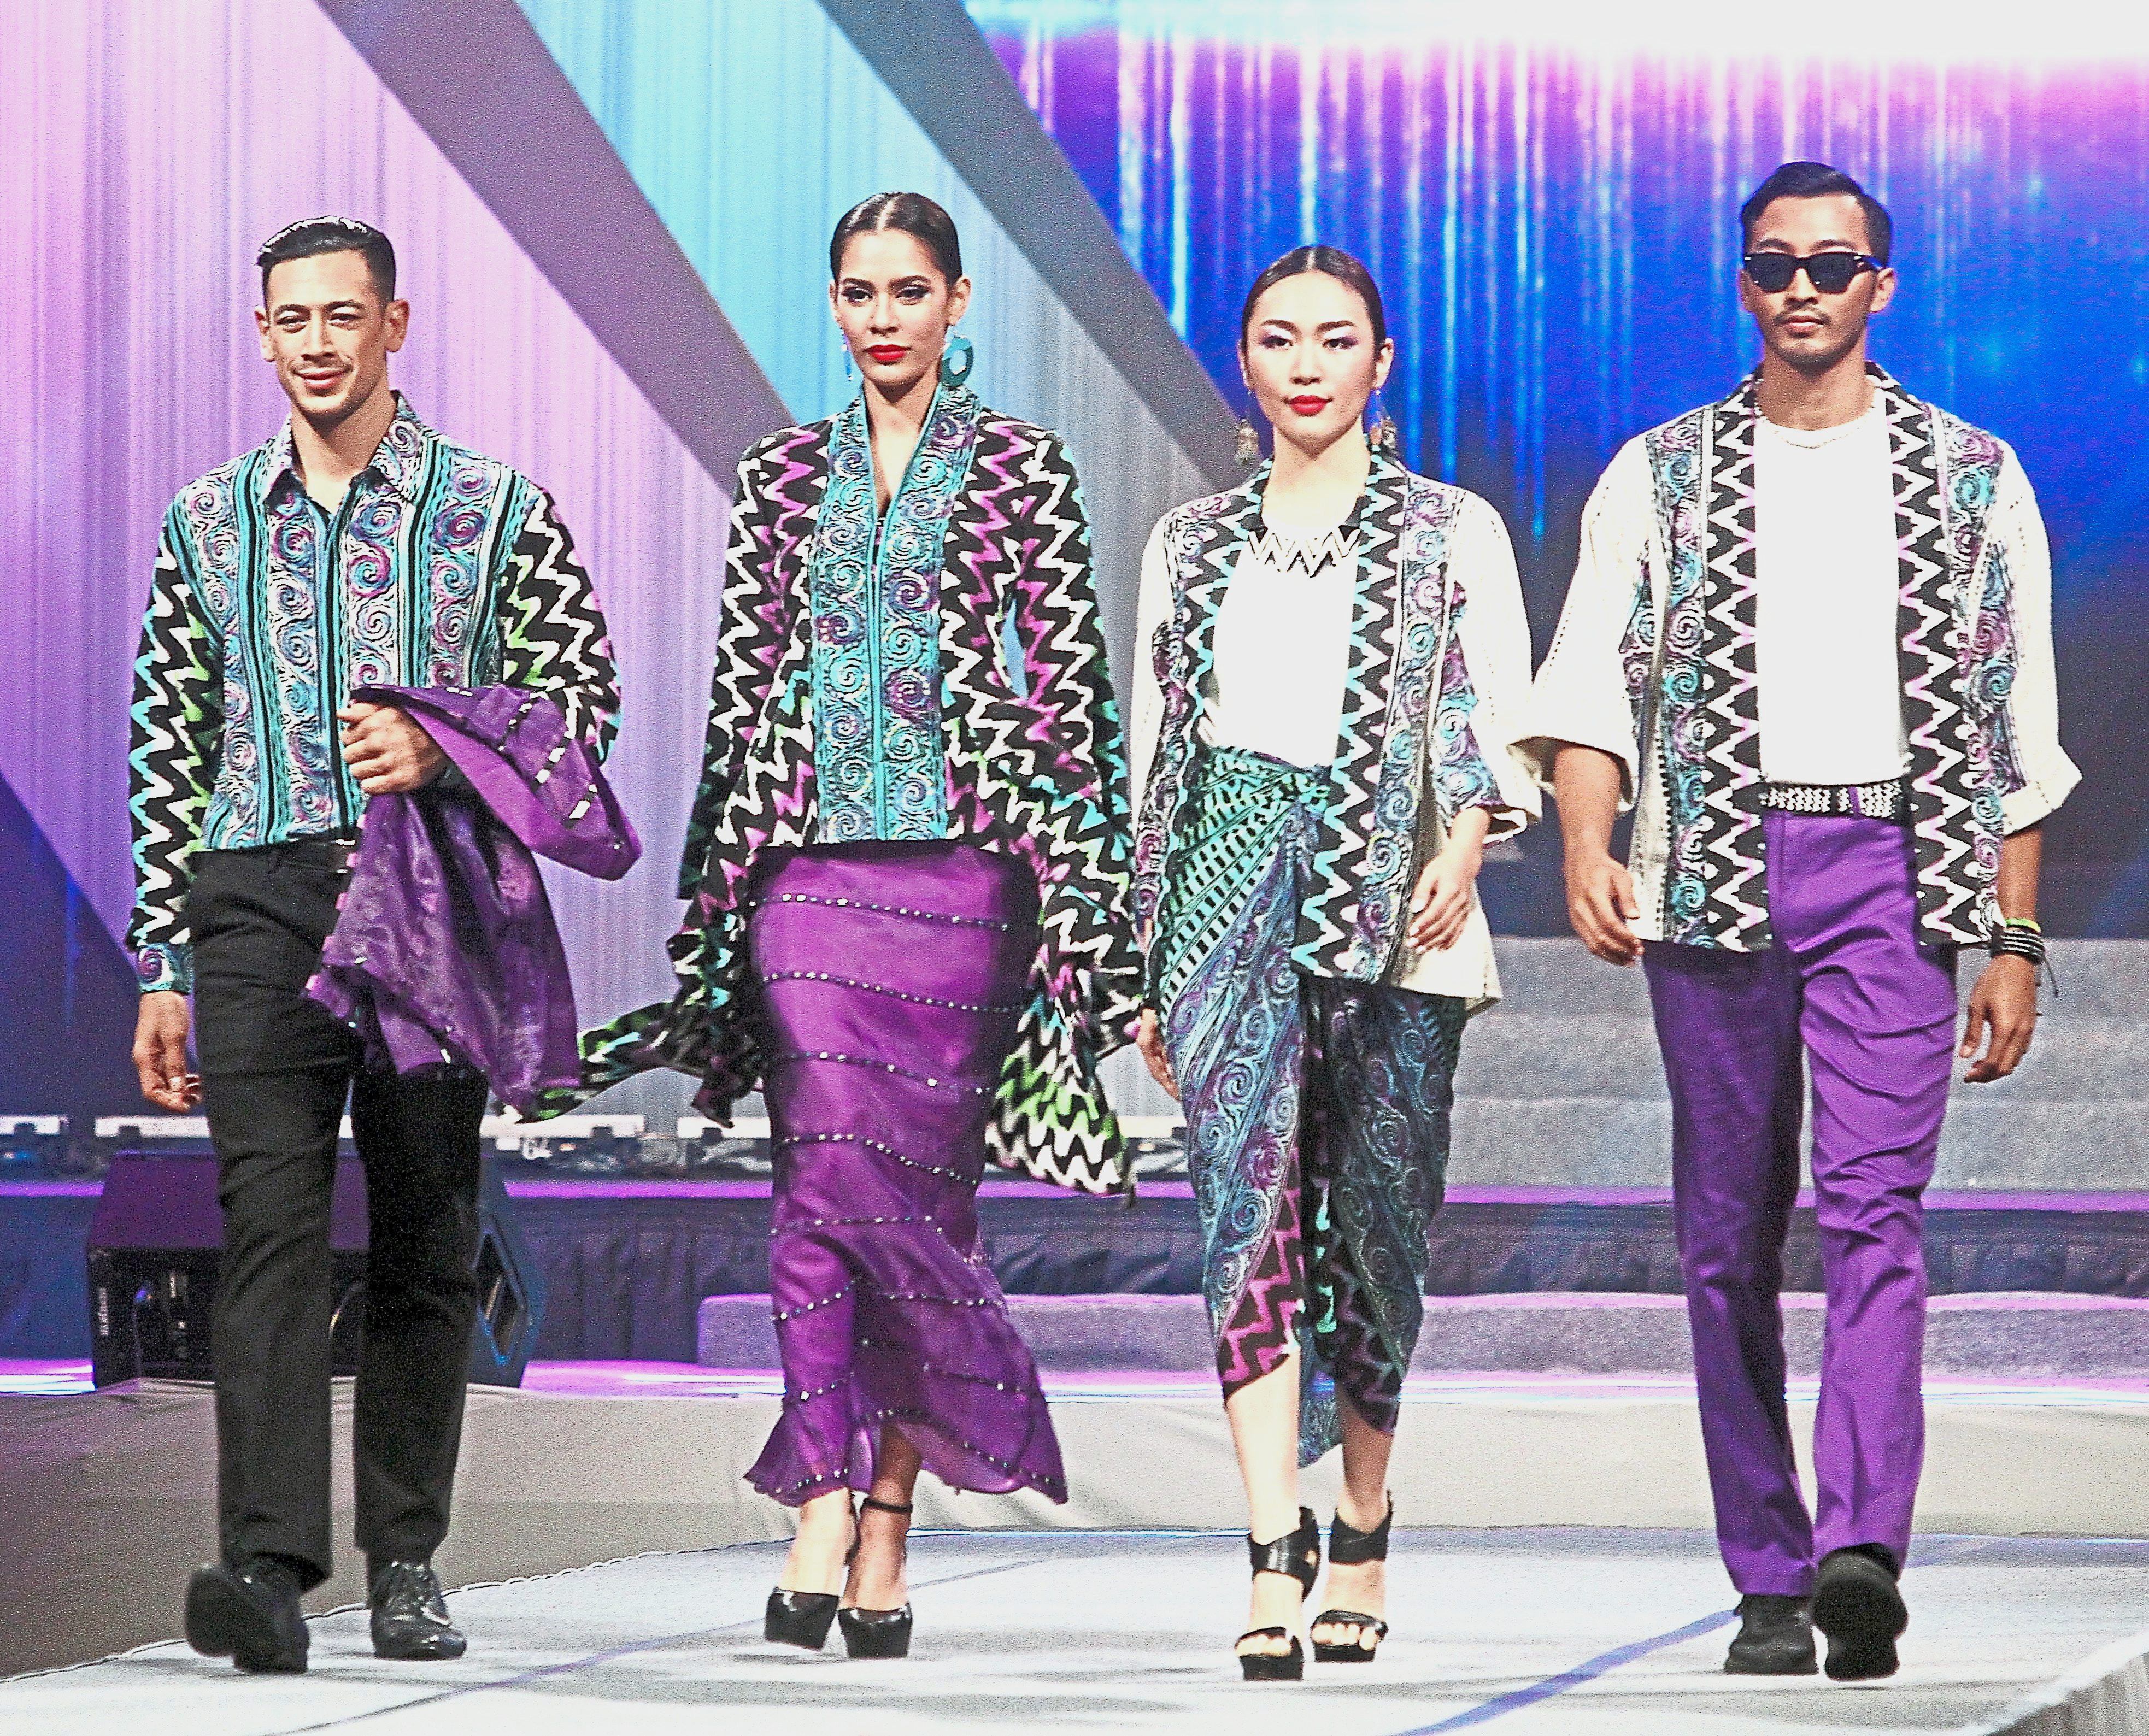 The designs of Ziyan Batik that won the first prize in the Fashion category at the design competition.